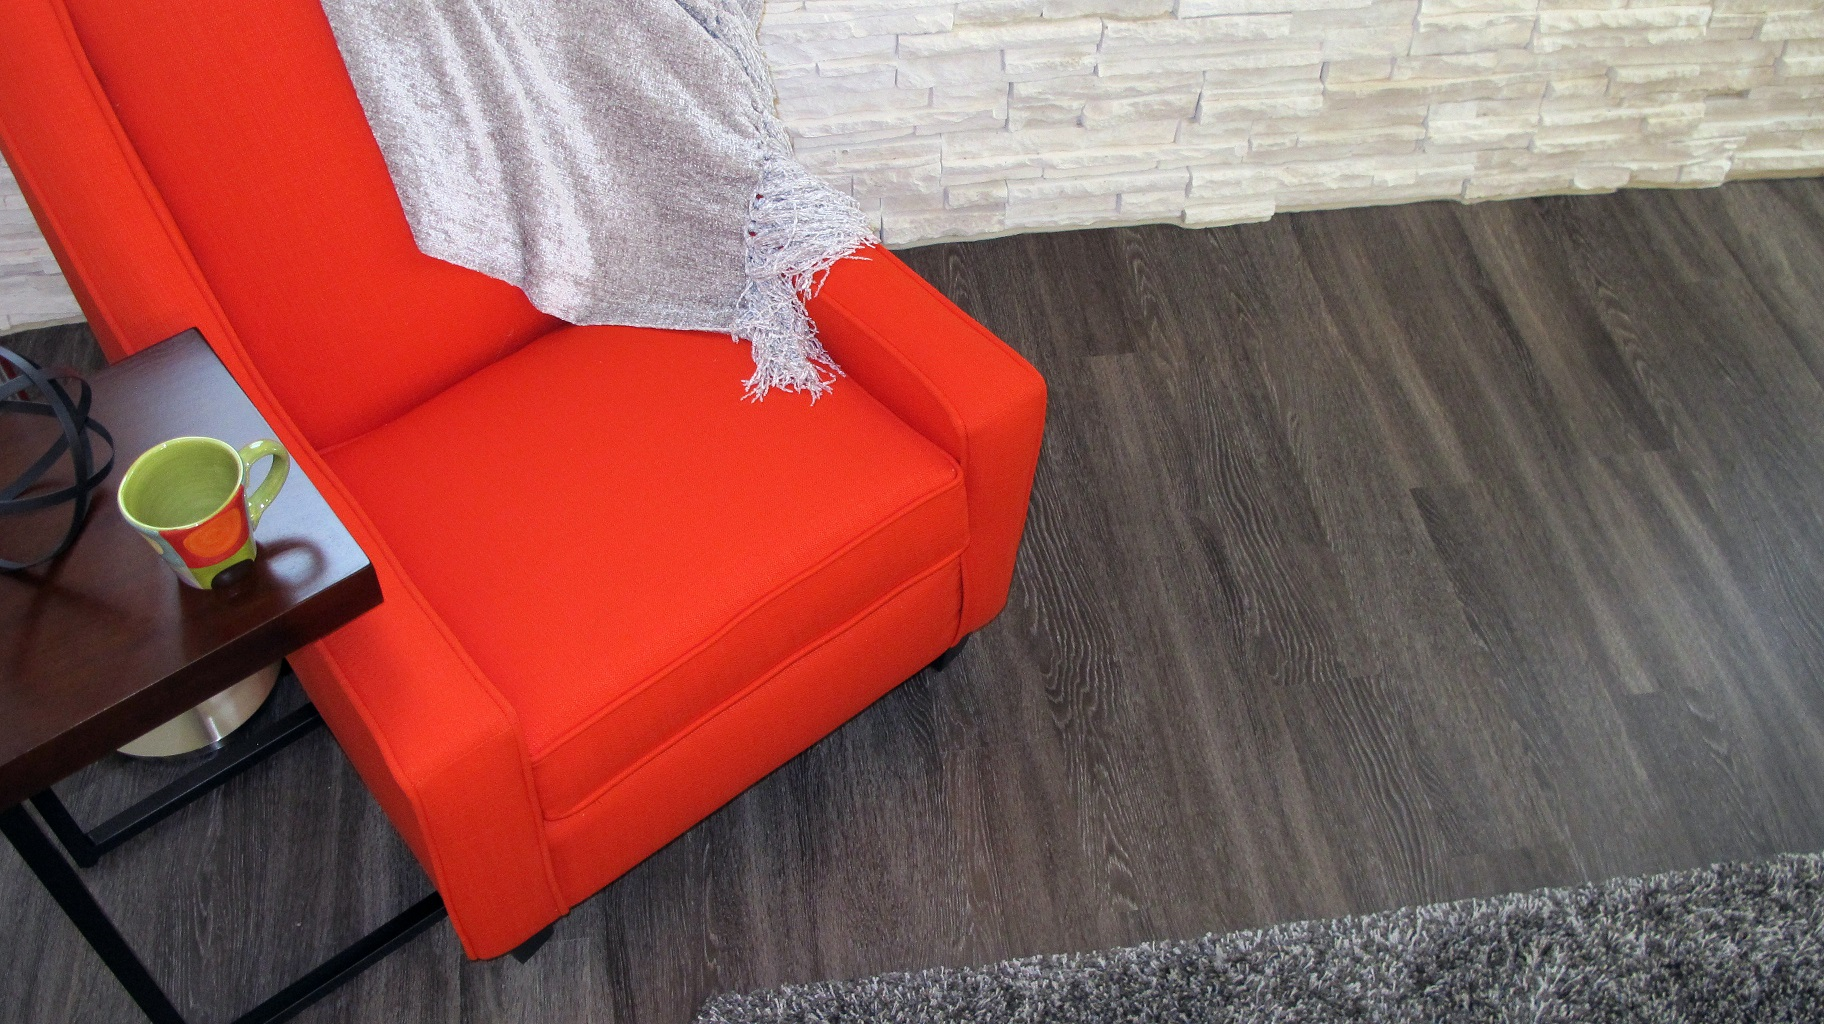 Luxury vinyl plank LVP shaw resilient Harwich Raven floating installation stone masonry white orange chair bright area rug